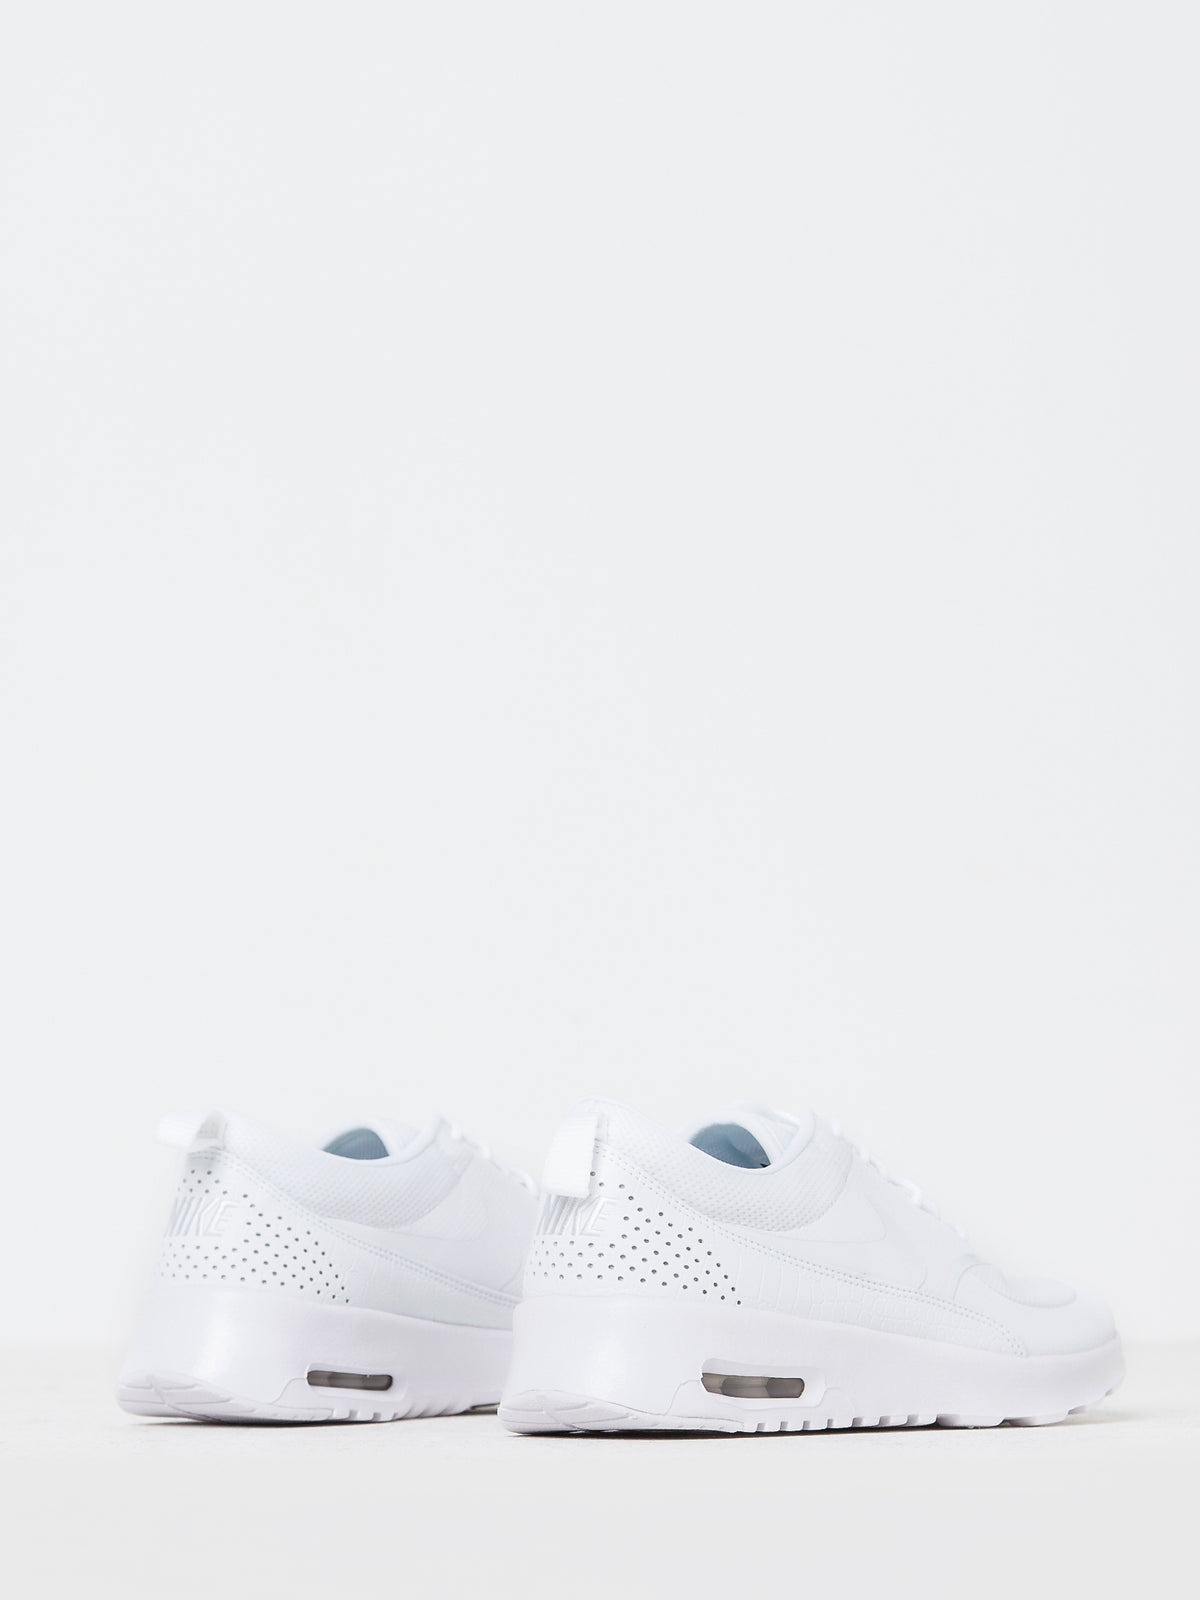 Womens Air Max Thea Sneakers in White